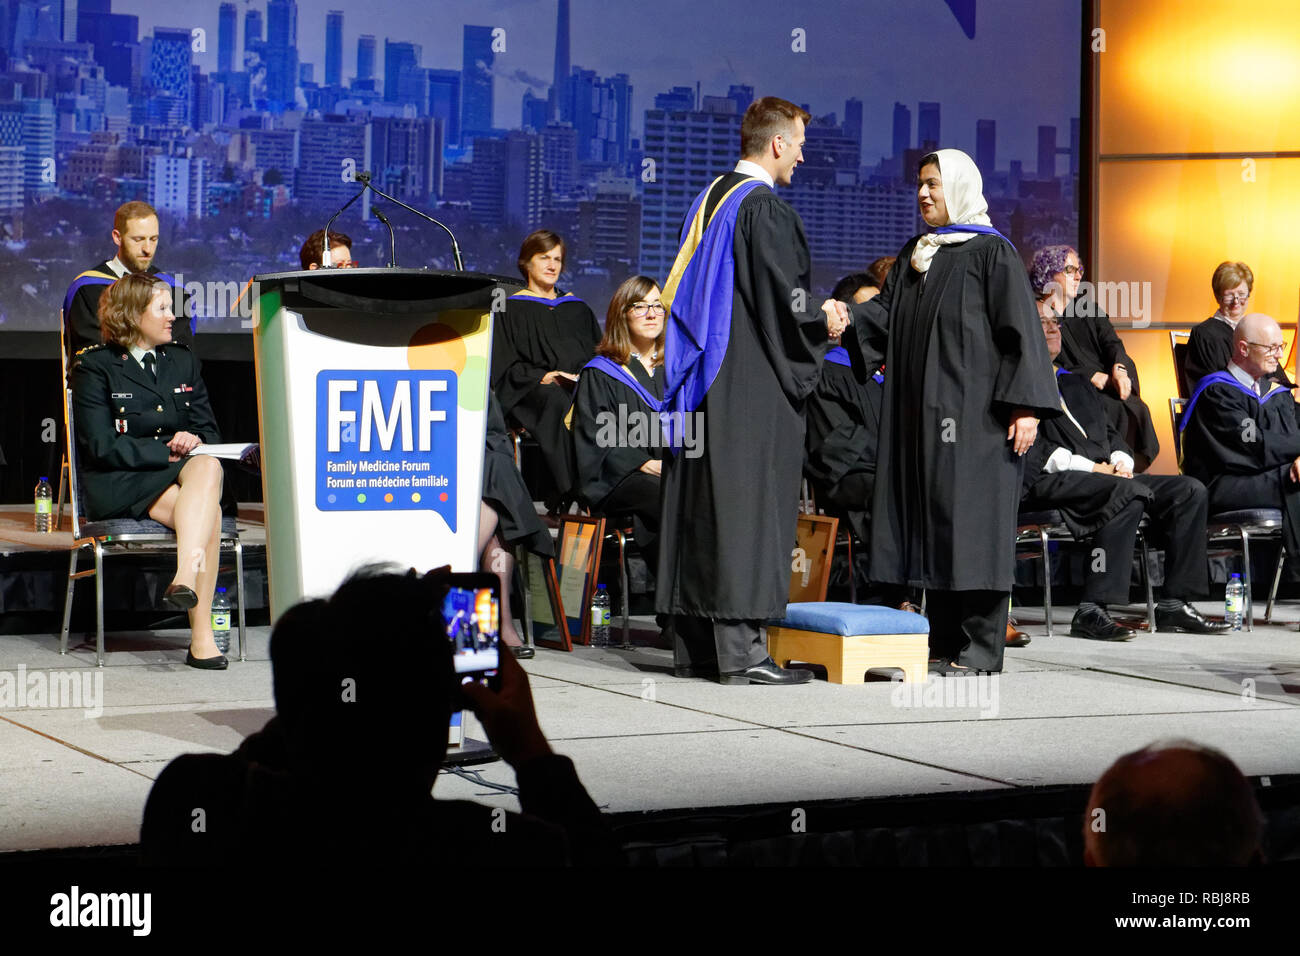 graduating-medicine-students-recieving-their-medical-doctor-certificates-at-the-canadian-familiy-medicine-forum-in-toronto-november-2018-RBJ8RB.jpg